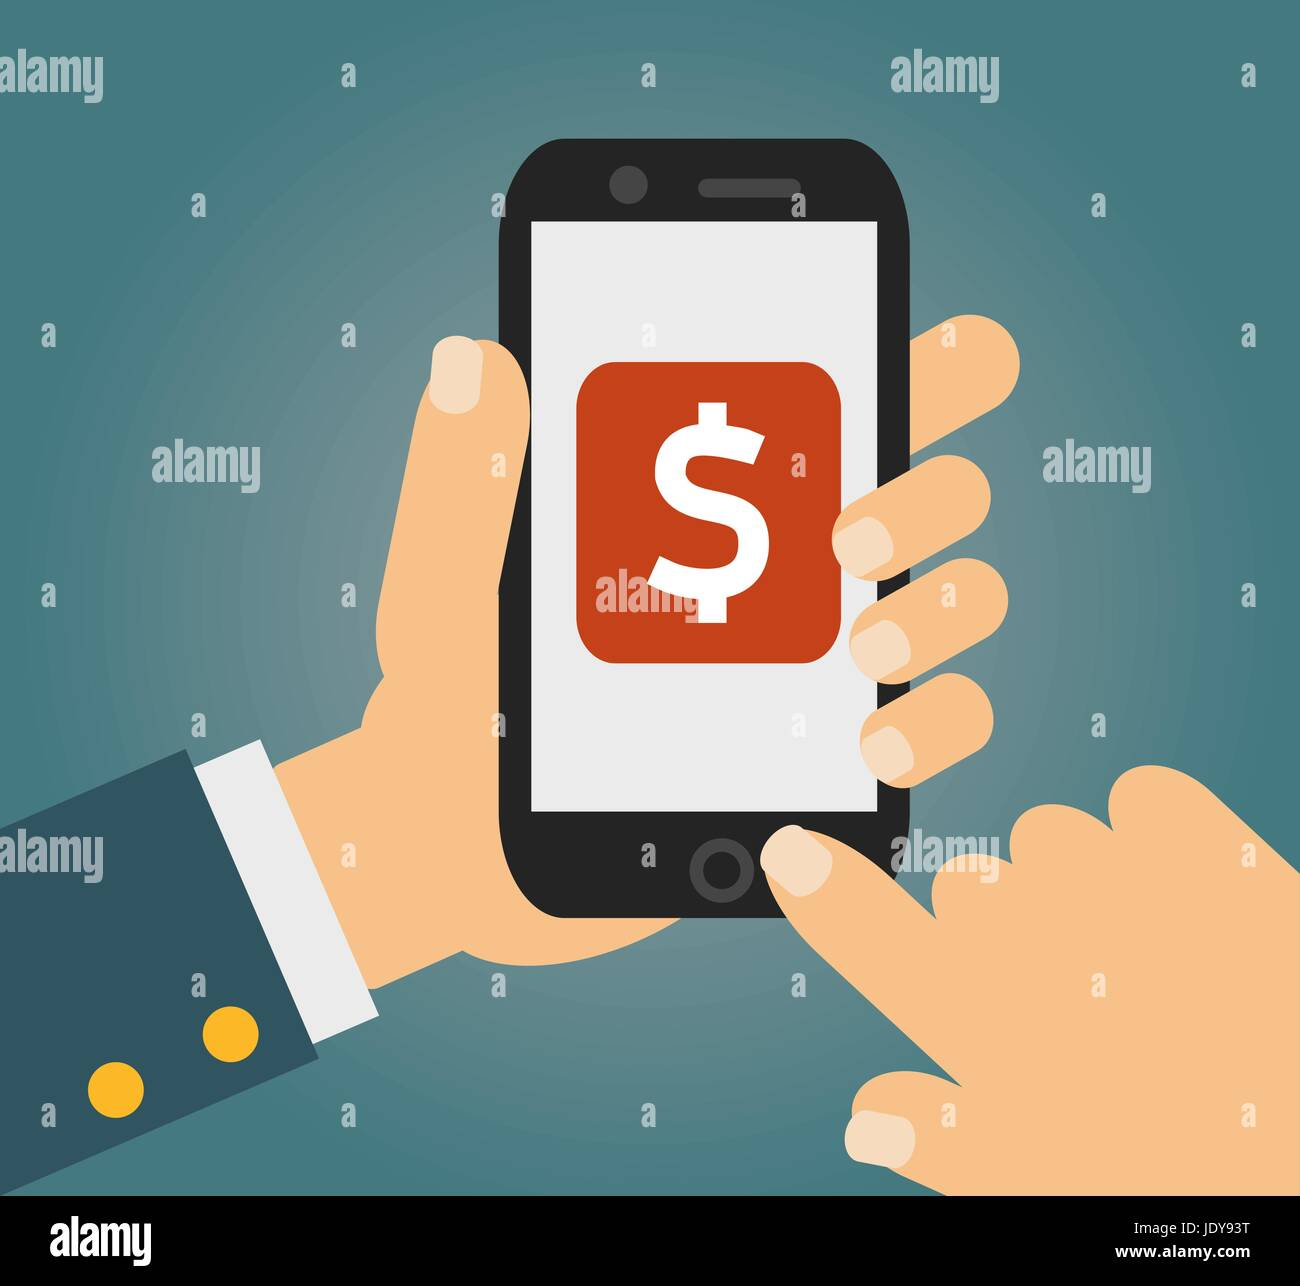 Hand touching smartphone with dollar sign on the screen. Using mobile smart phone similar to iphon, flat design - Stock Vector